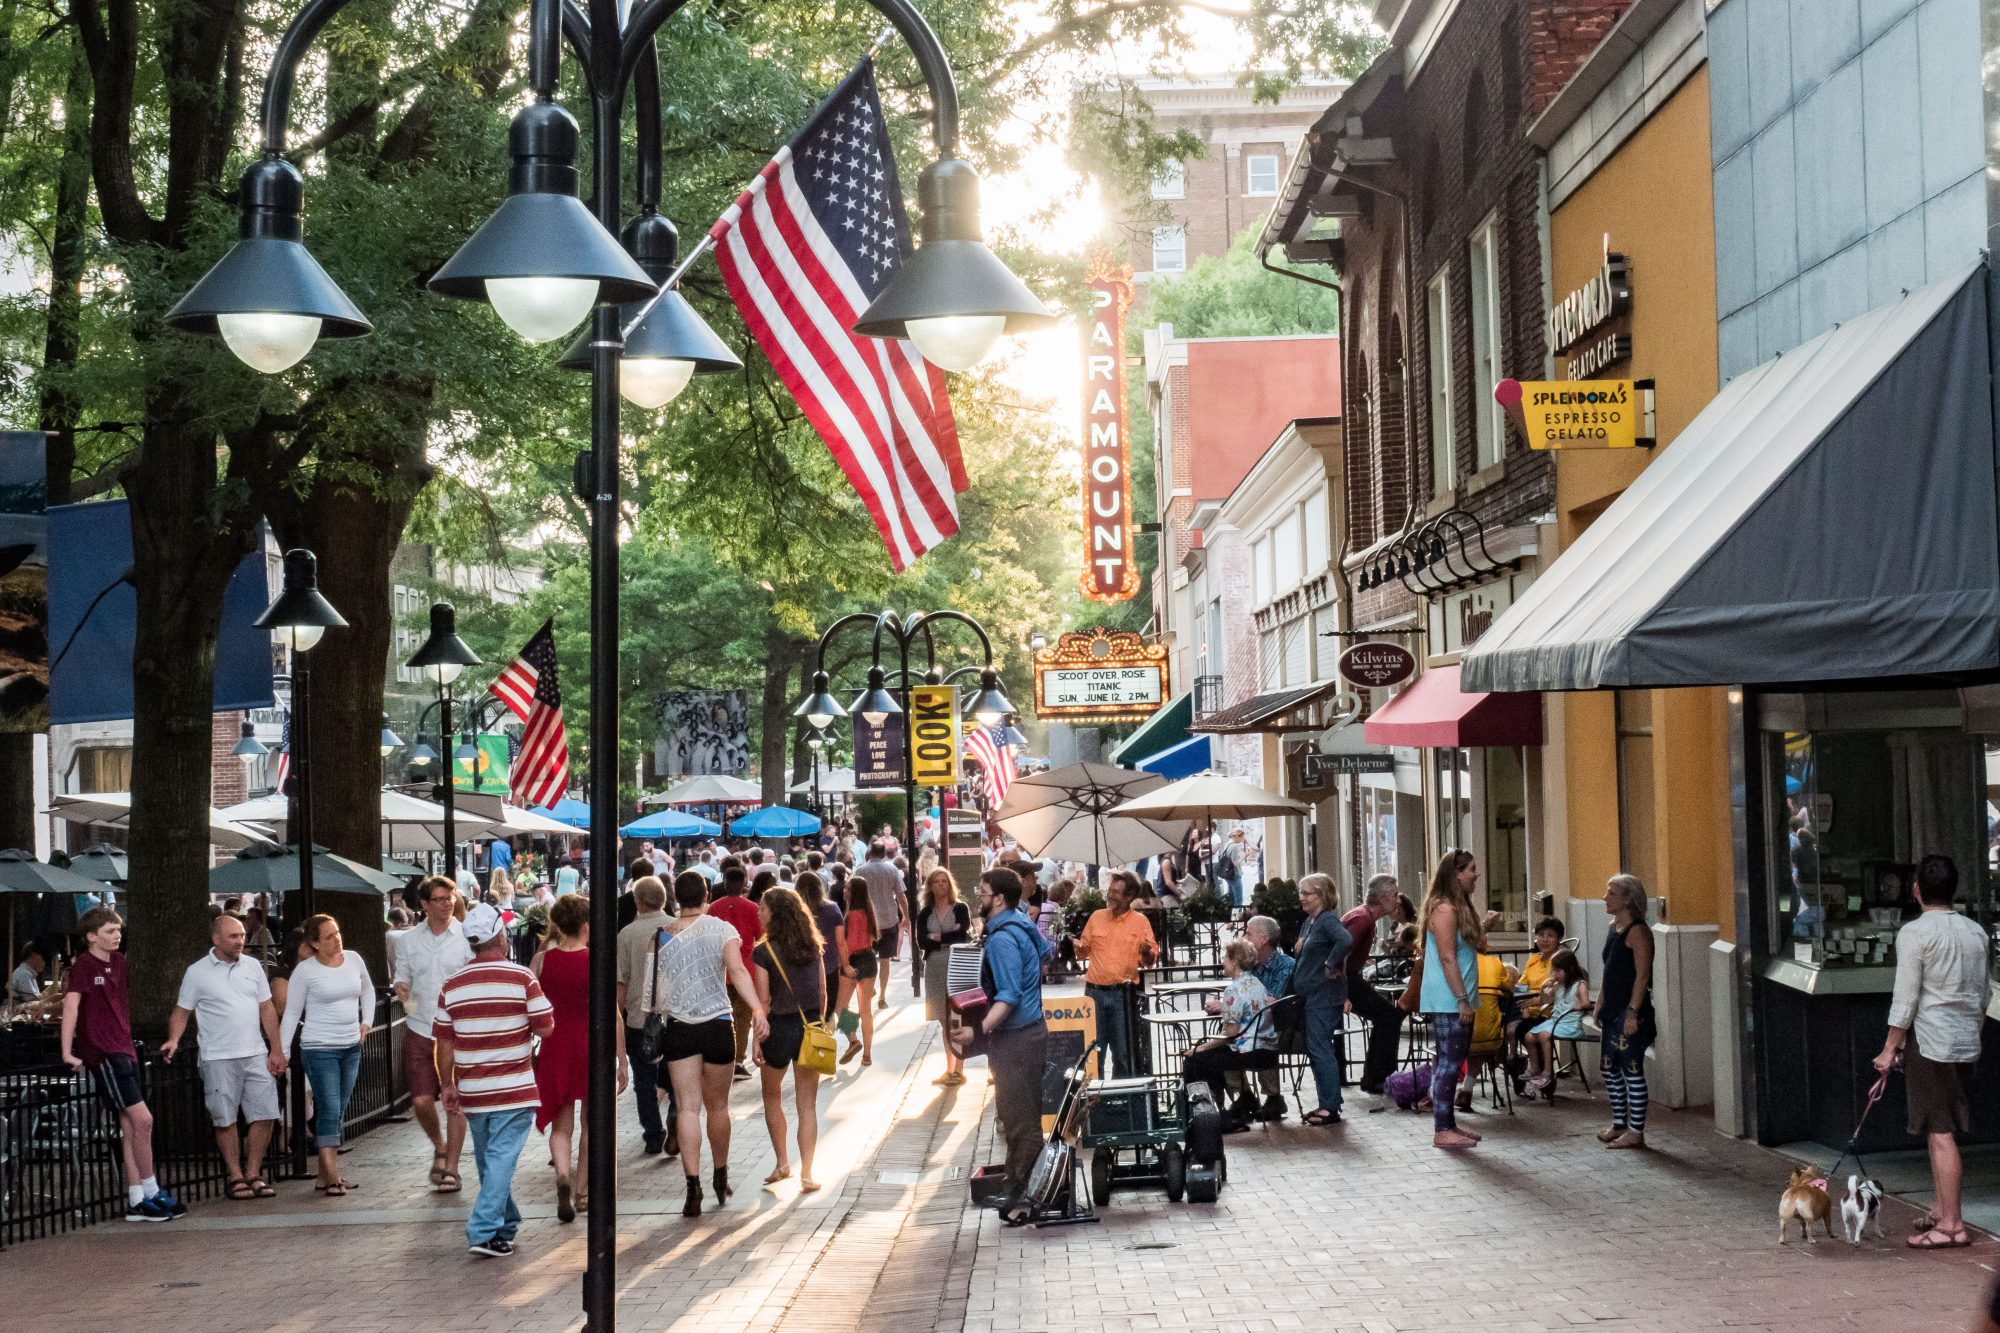 RX_1805_Top 20 Memorial Day Weekend Destinations in the South Yelp_Charlottesville, Virginia